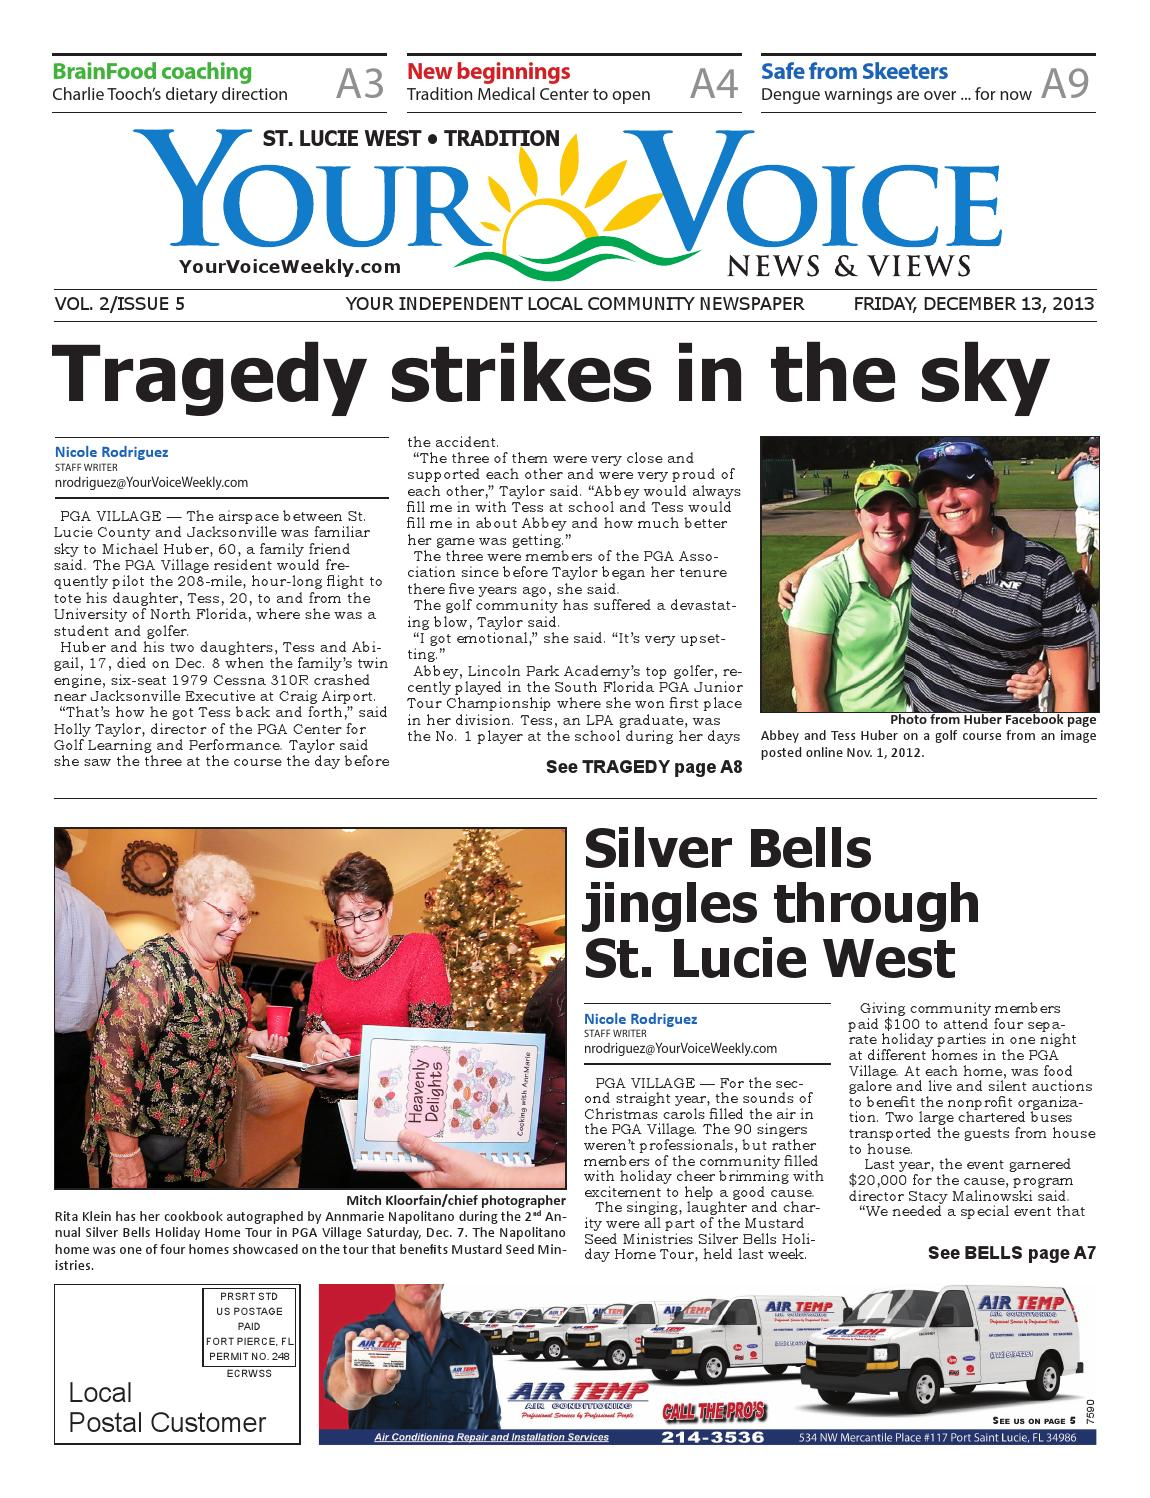 Stluciewest 12 13 2013 by your voice news views issuu fandeluxe Image collections